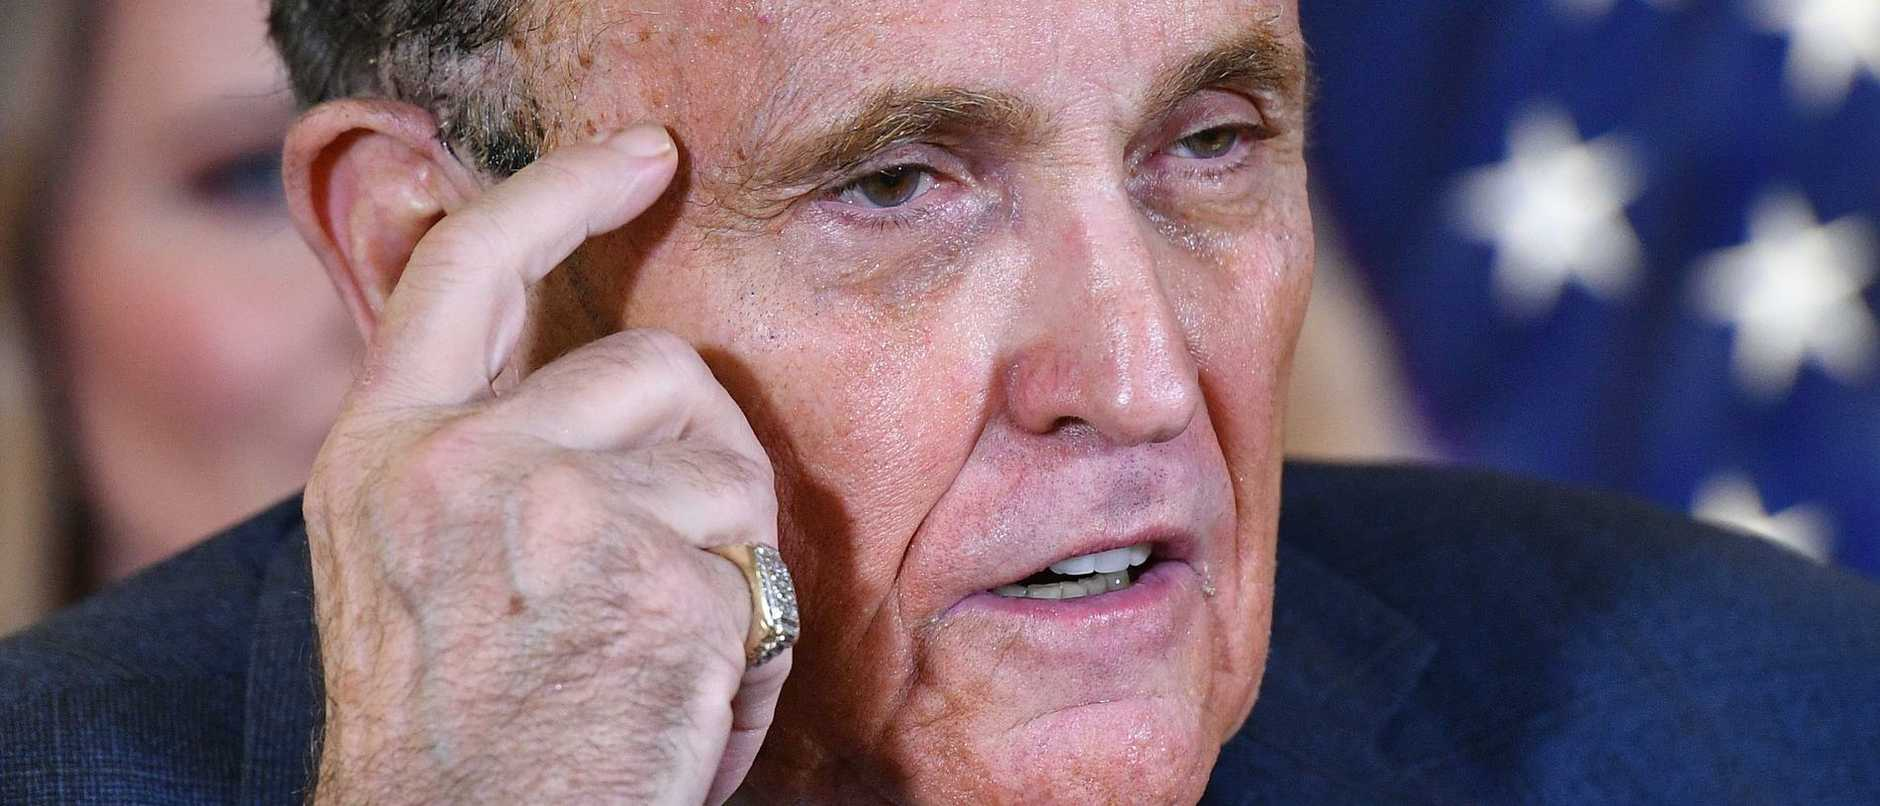 Donald Trump's former lawyer Rudy Giuliani has been sued for $1.7 billion for his role in promoting false claims of election fraud.